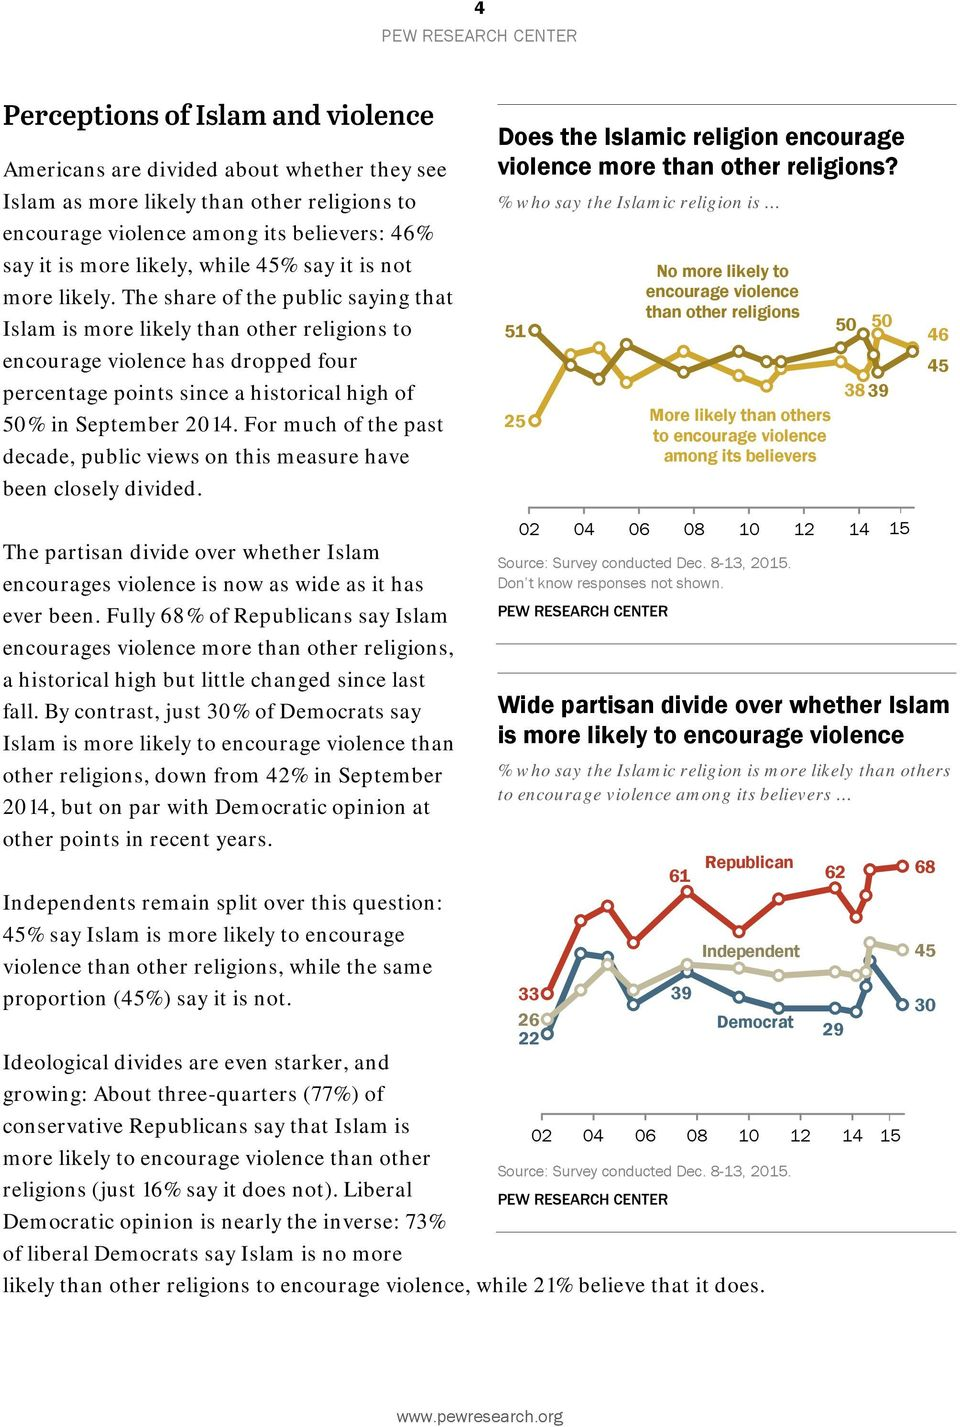 The share of the public saying that Islam is more likely than other religions to encourage violence has dropped four percentage points since a historical high of 50% in September 2014.